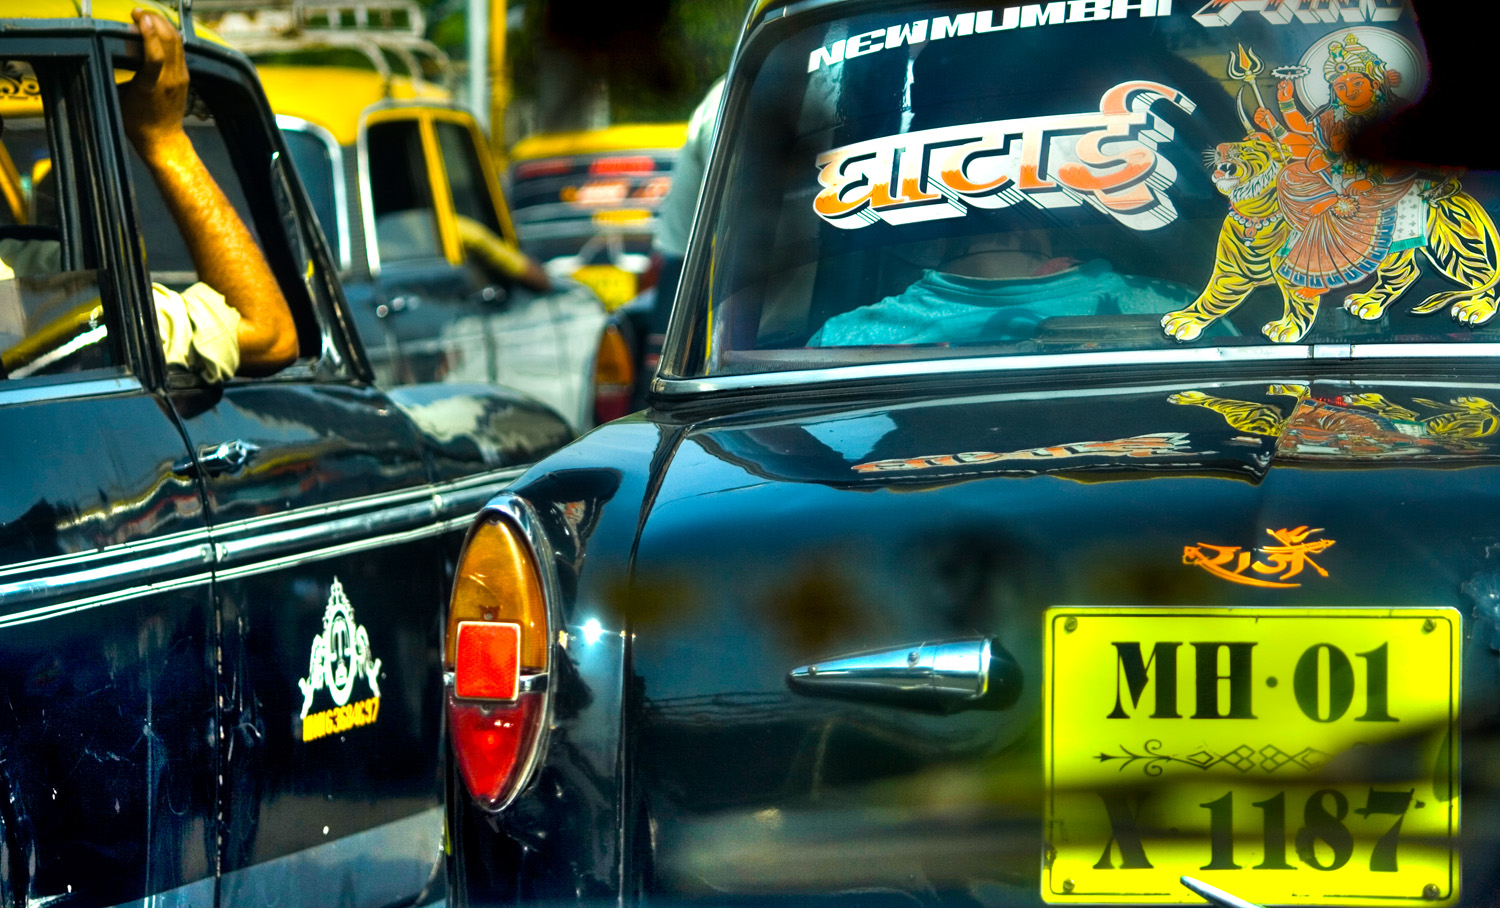 Mumbai taxis (Andy Webb)